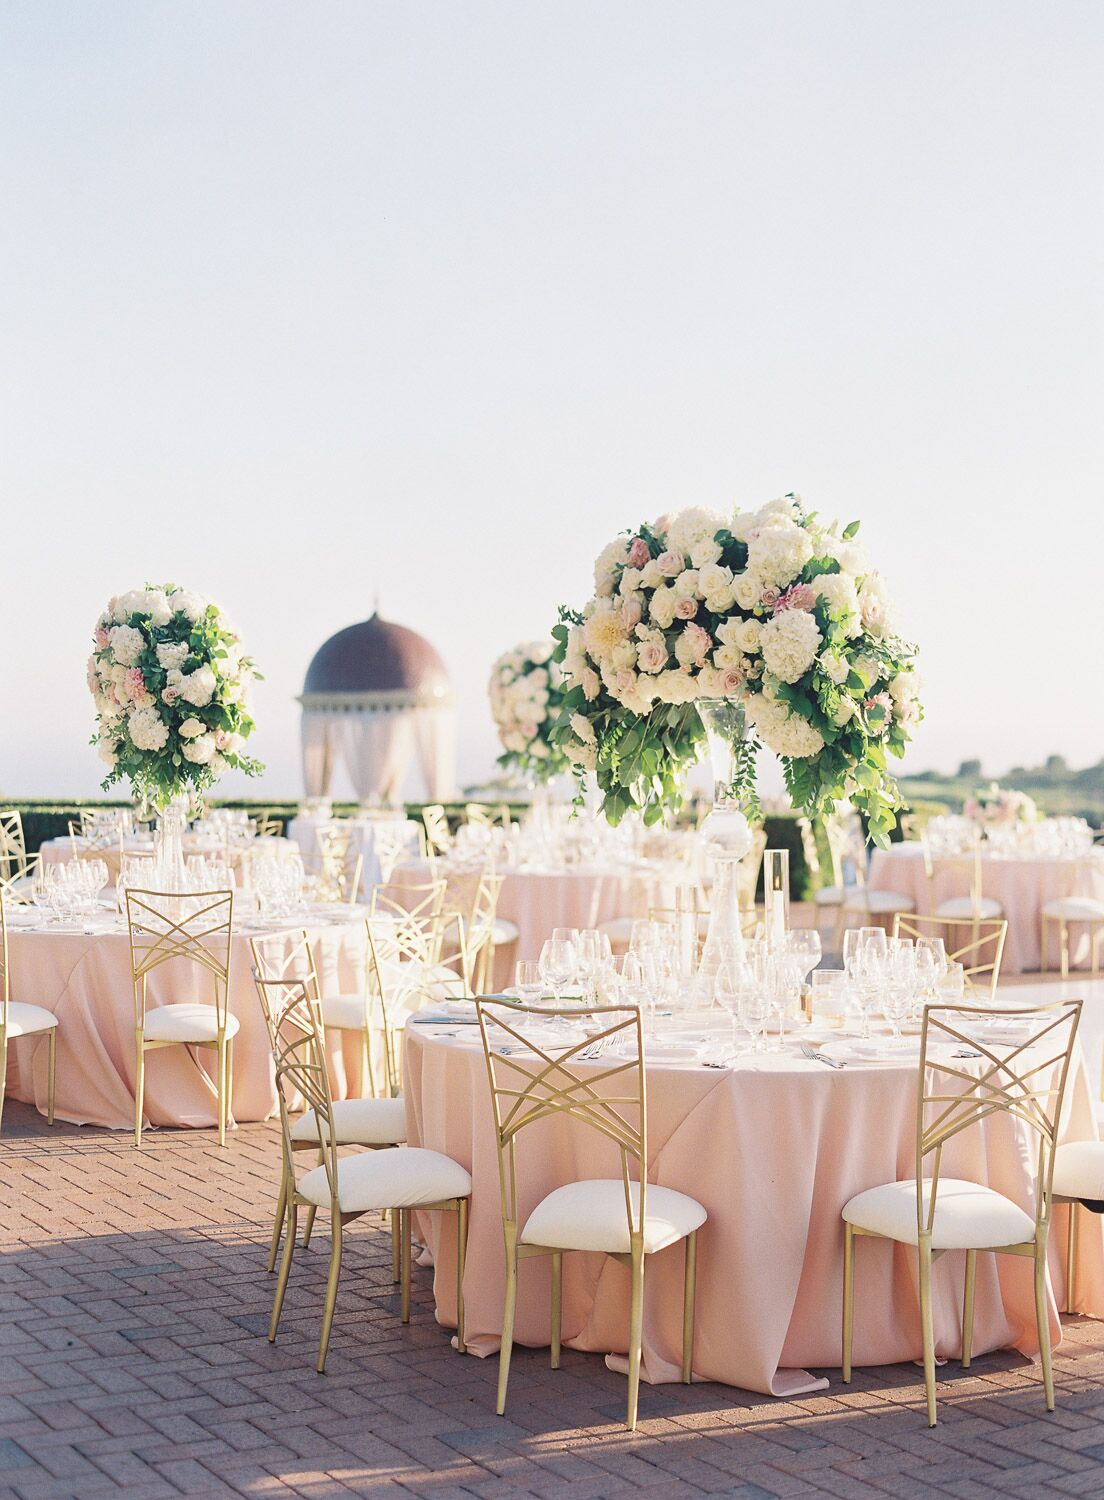 Outdoor wedding reception with round tablesettings